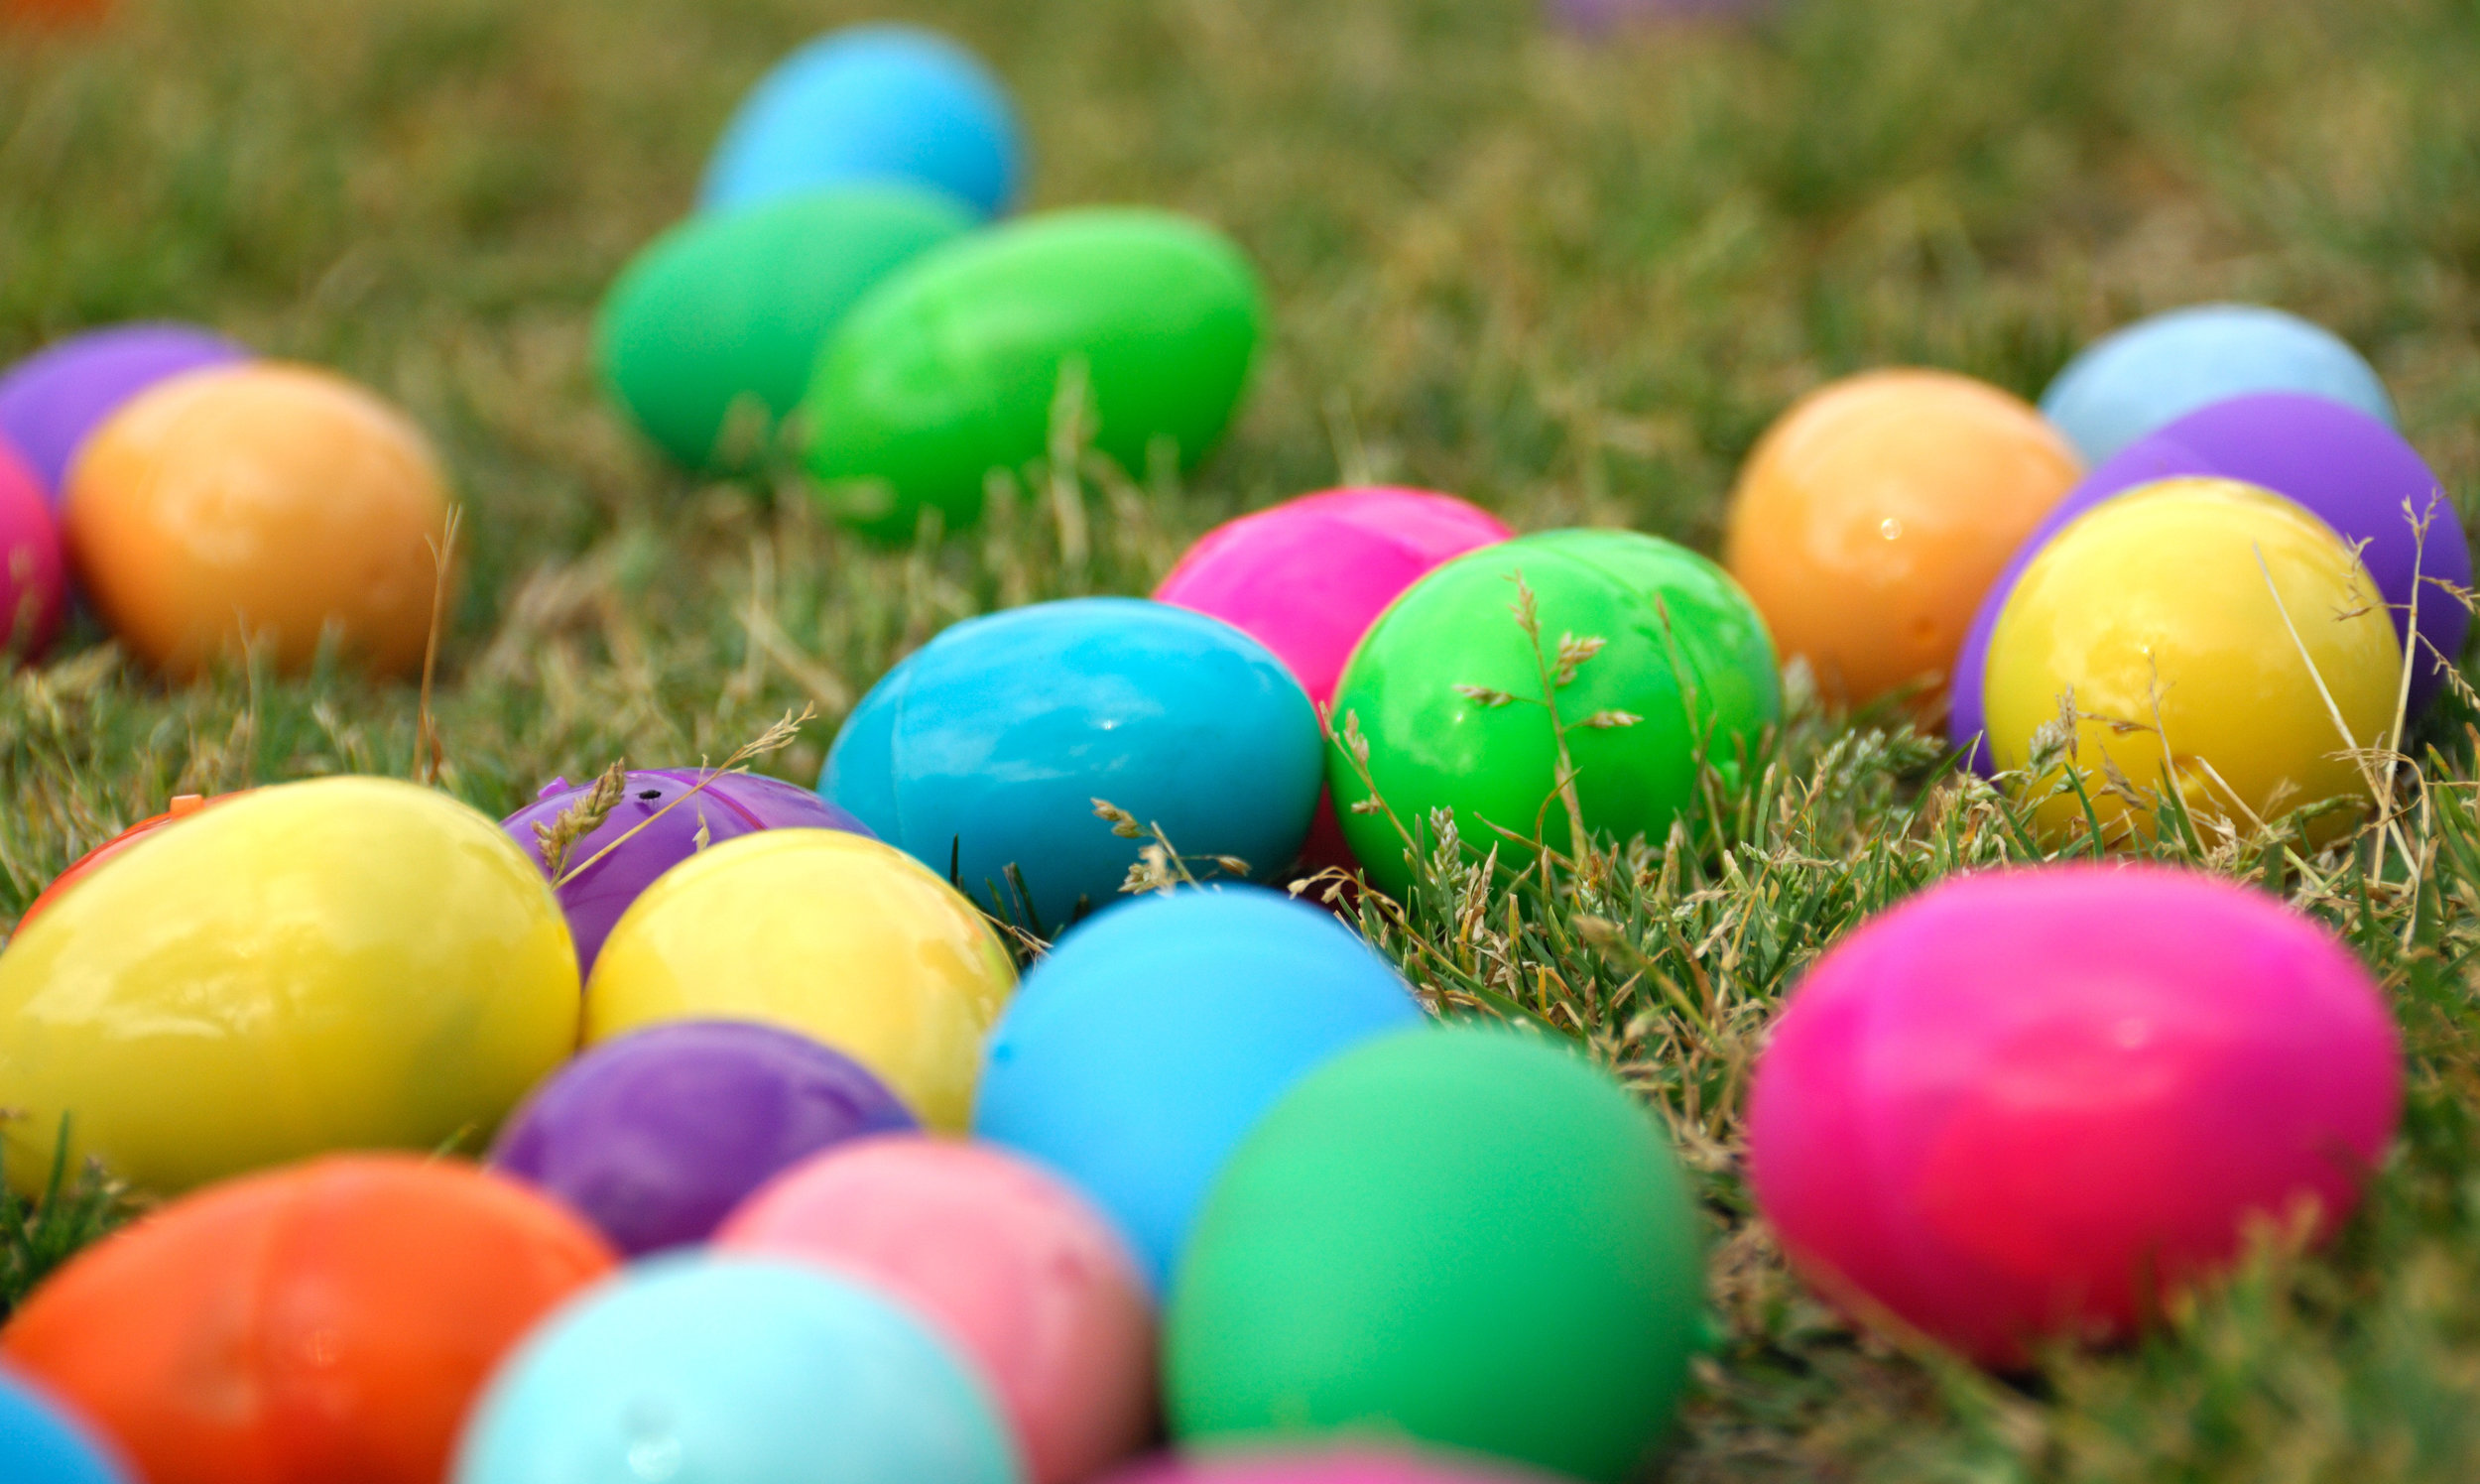 Easter Egg Hunt Manchester by the Sea